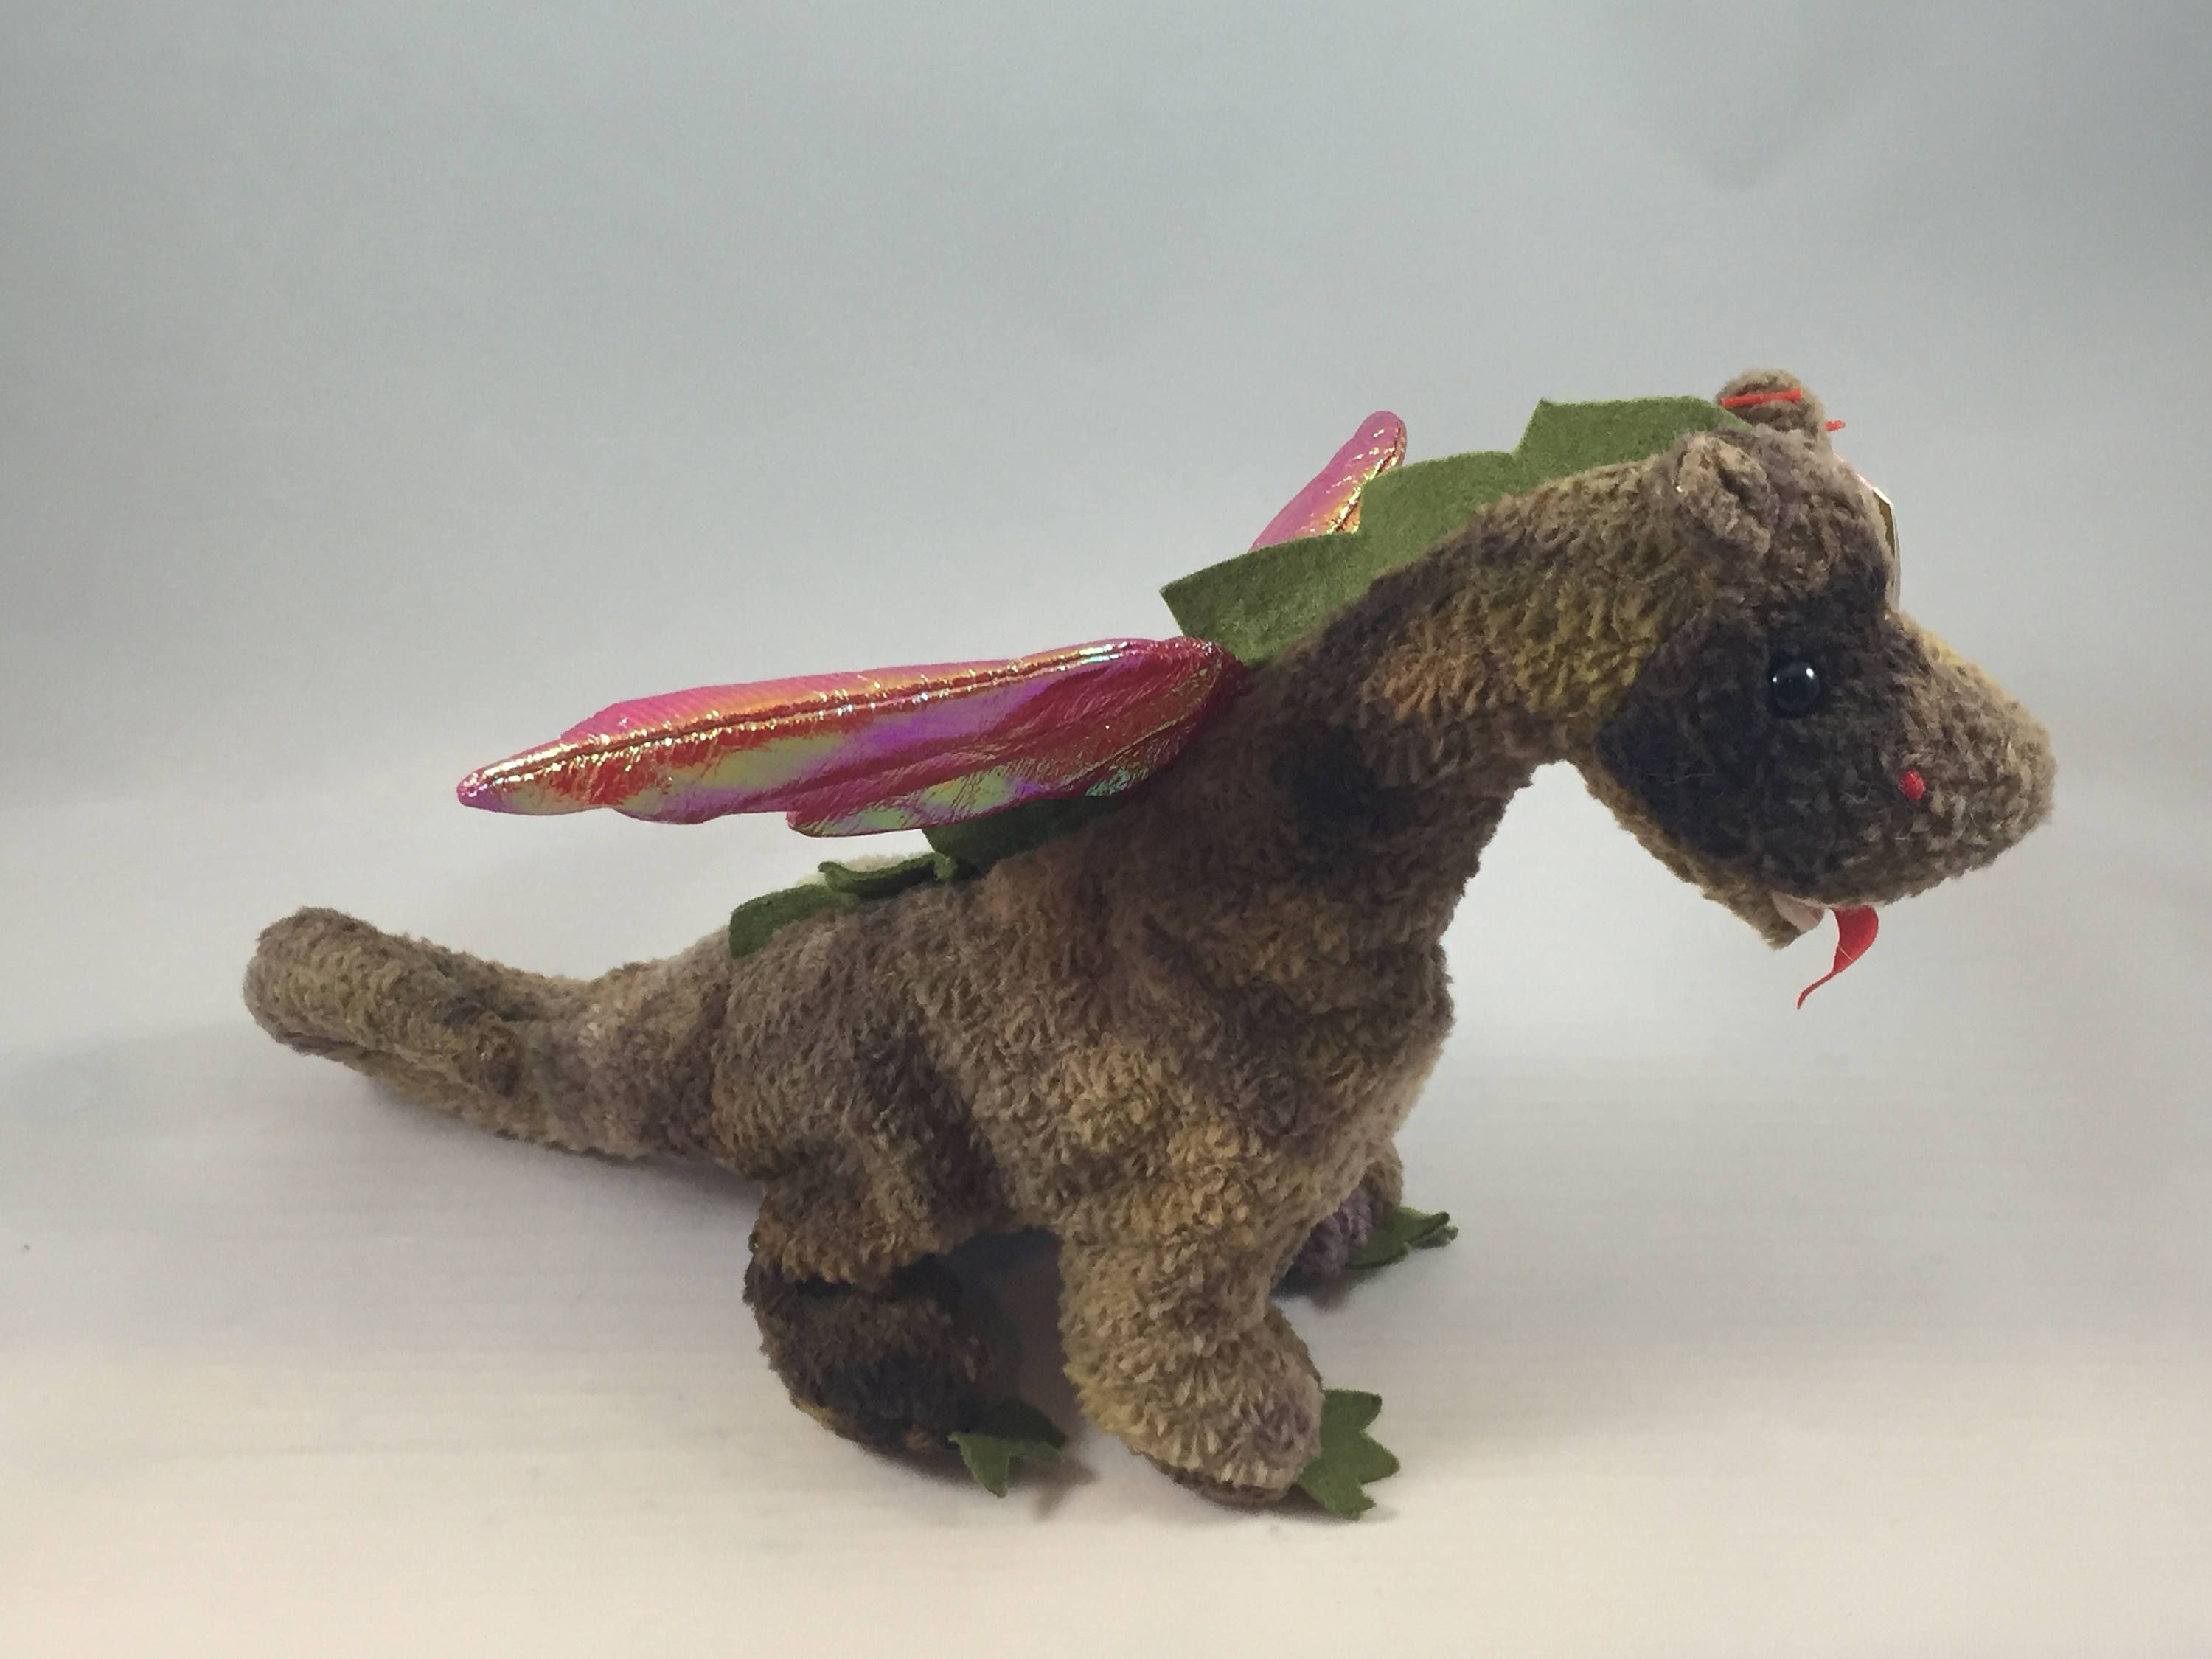 f5a26c28d30 Scorch the Dragon Plush TY Beanie Baby Stuffed Vintage Toy